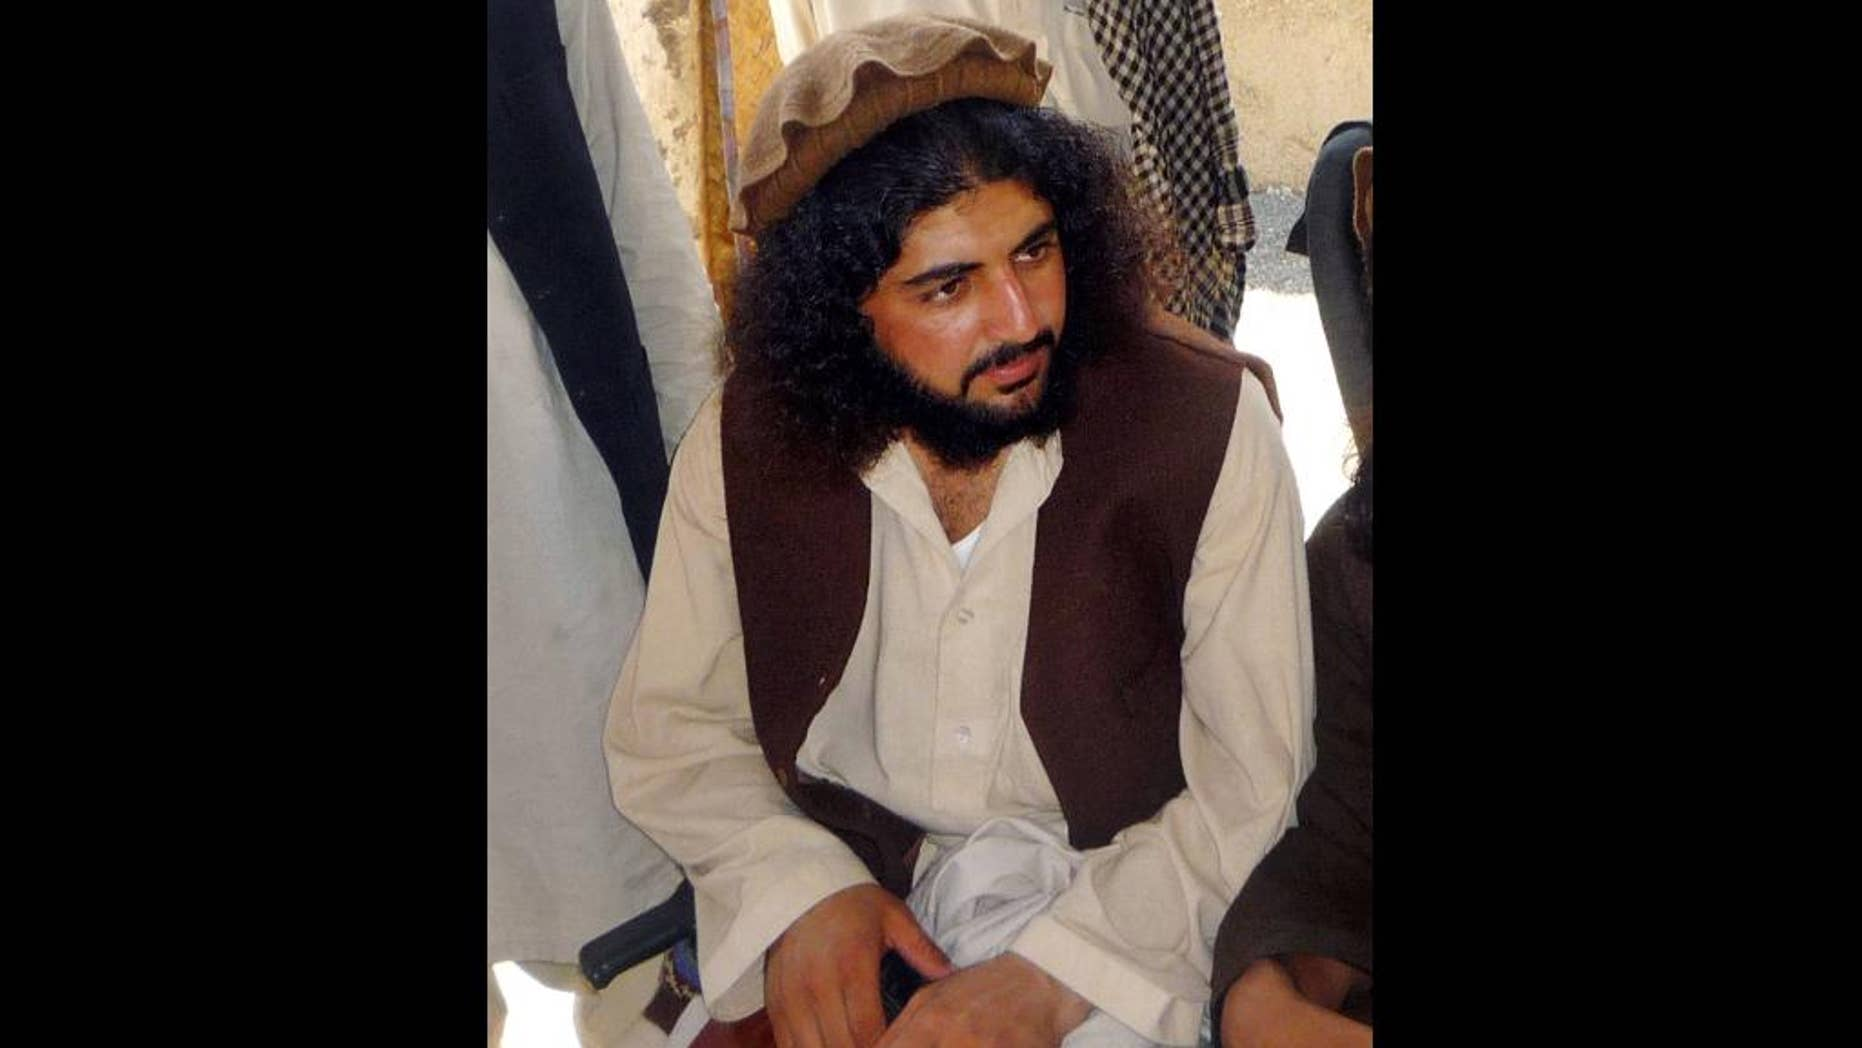 FILE - In this Oct. 4, 2009 file photo, Pakistani Taliban commander Latif Mehsud sits with fellows in Sararogha in south Waziristan in Pakistan. The U.S. military in Afghanistan has handed over three Pakistani detainees to Islamabad, including one who Pakistani intelligence officers said is a senior Taliban commander long wanted by the Pakistani government. The transfer of Mehsud, a close confidante of the former head of the Pakistani Taliban, underlines the improving relations between the U.S., Pakistan and Afghanistan.  (AP Photo/Ishtiaq Mahsud, File)